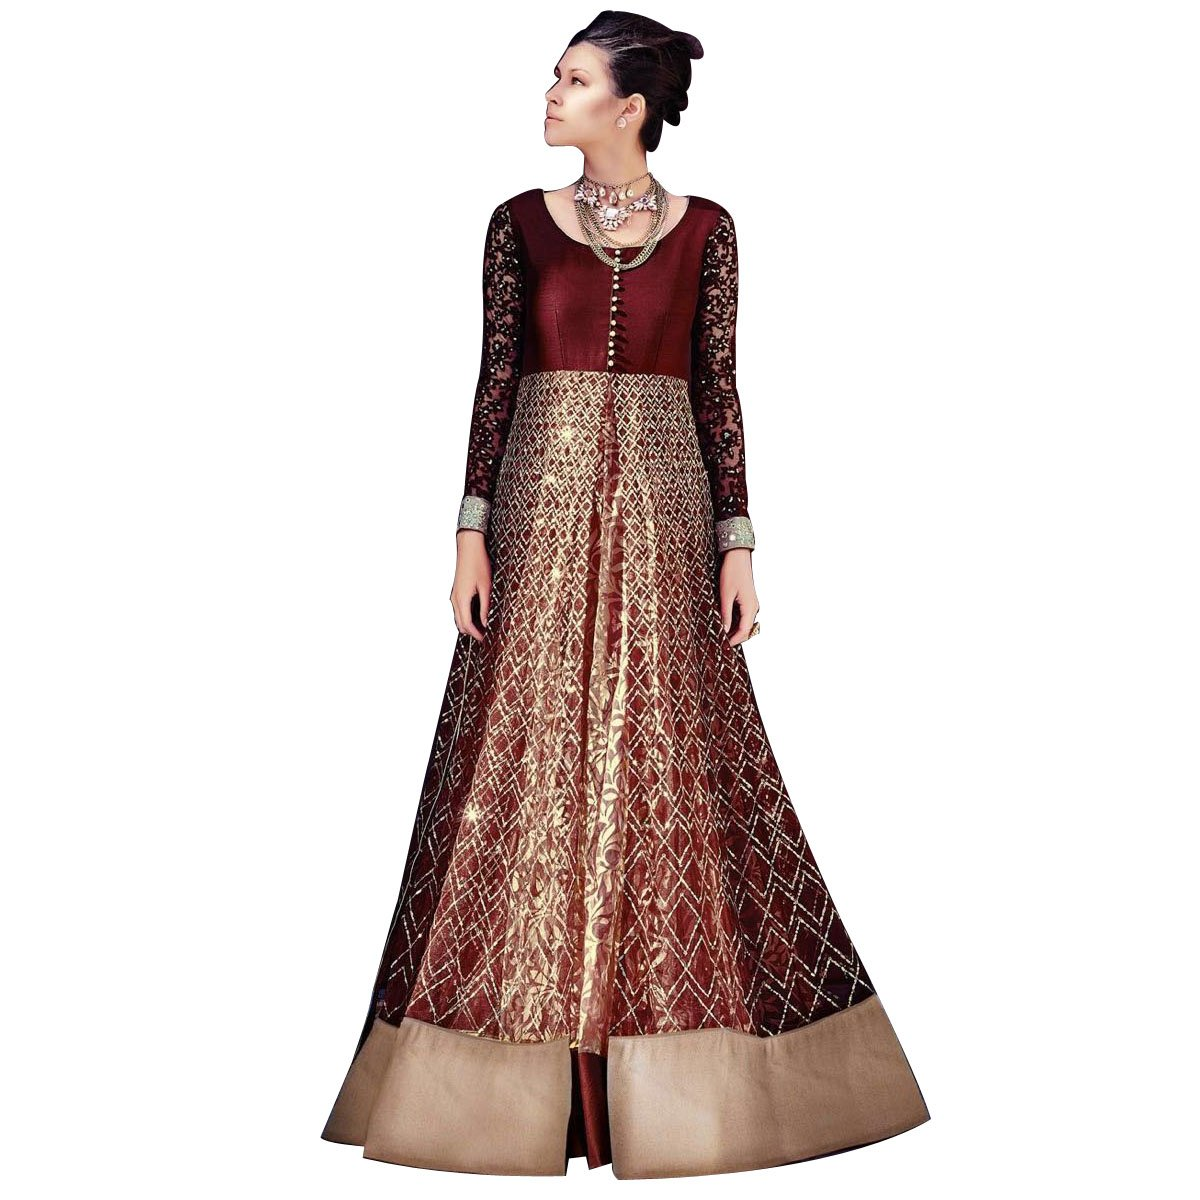 Designer Wedding Muslim Bridal Collection Ethnic Anarkali Suit Dupatta Ceremony hit 4